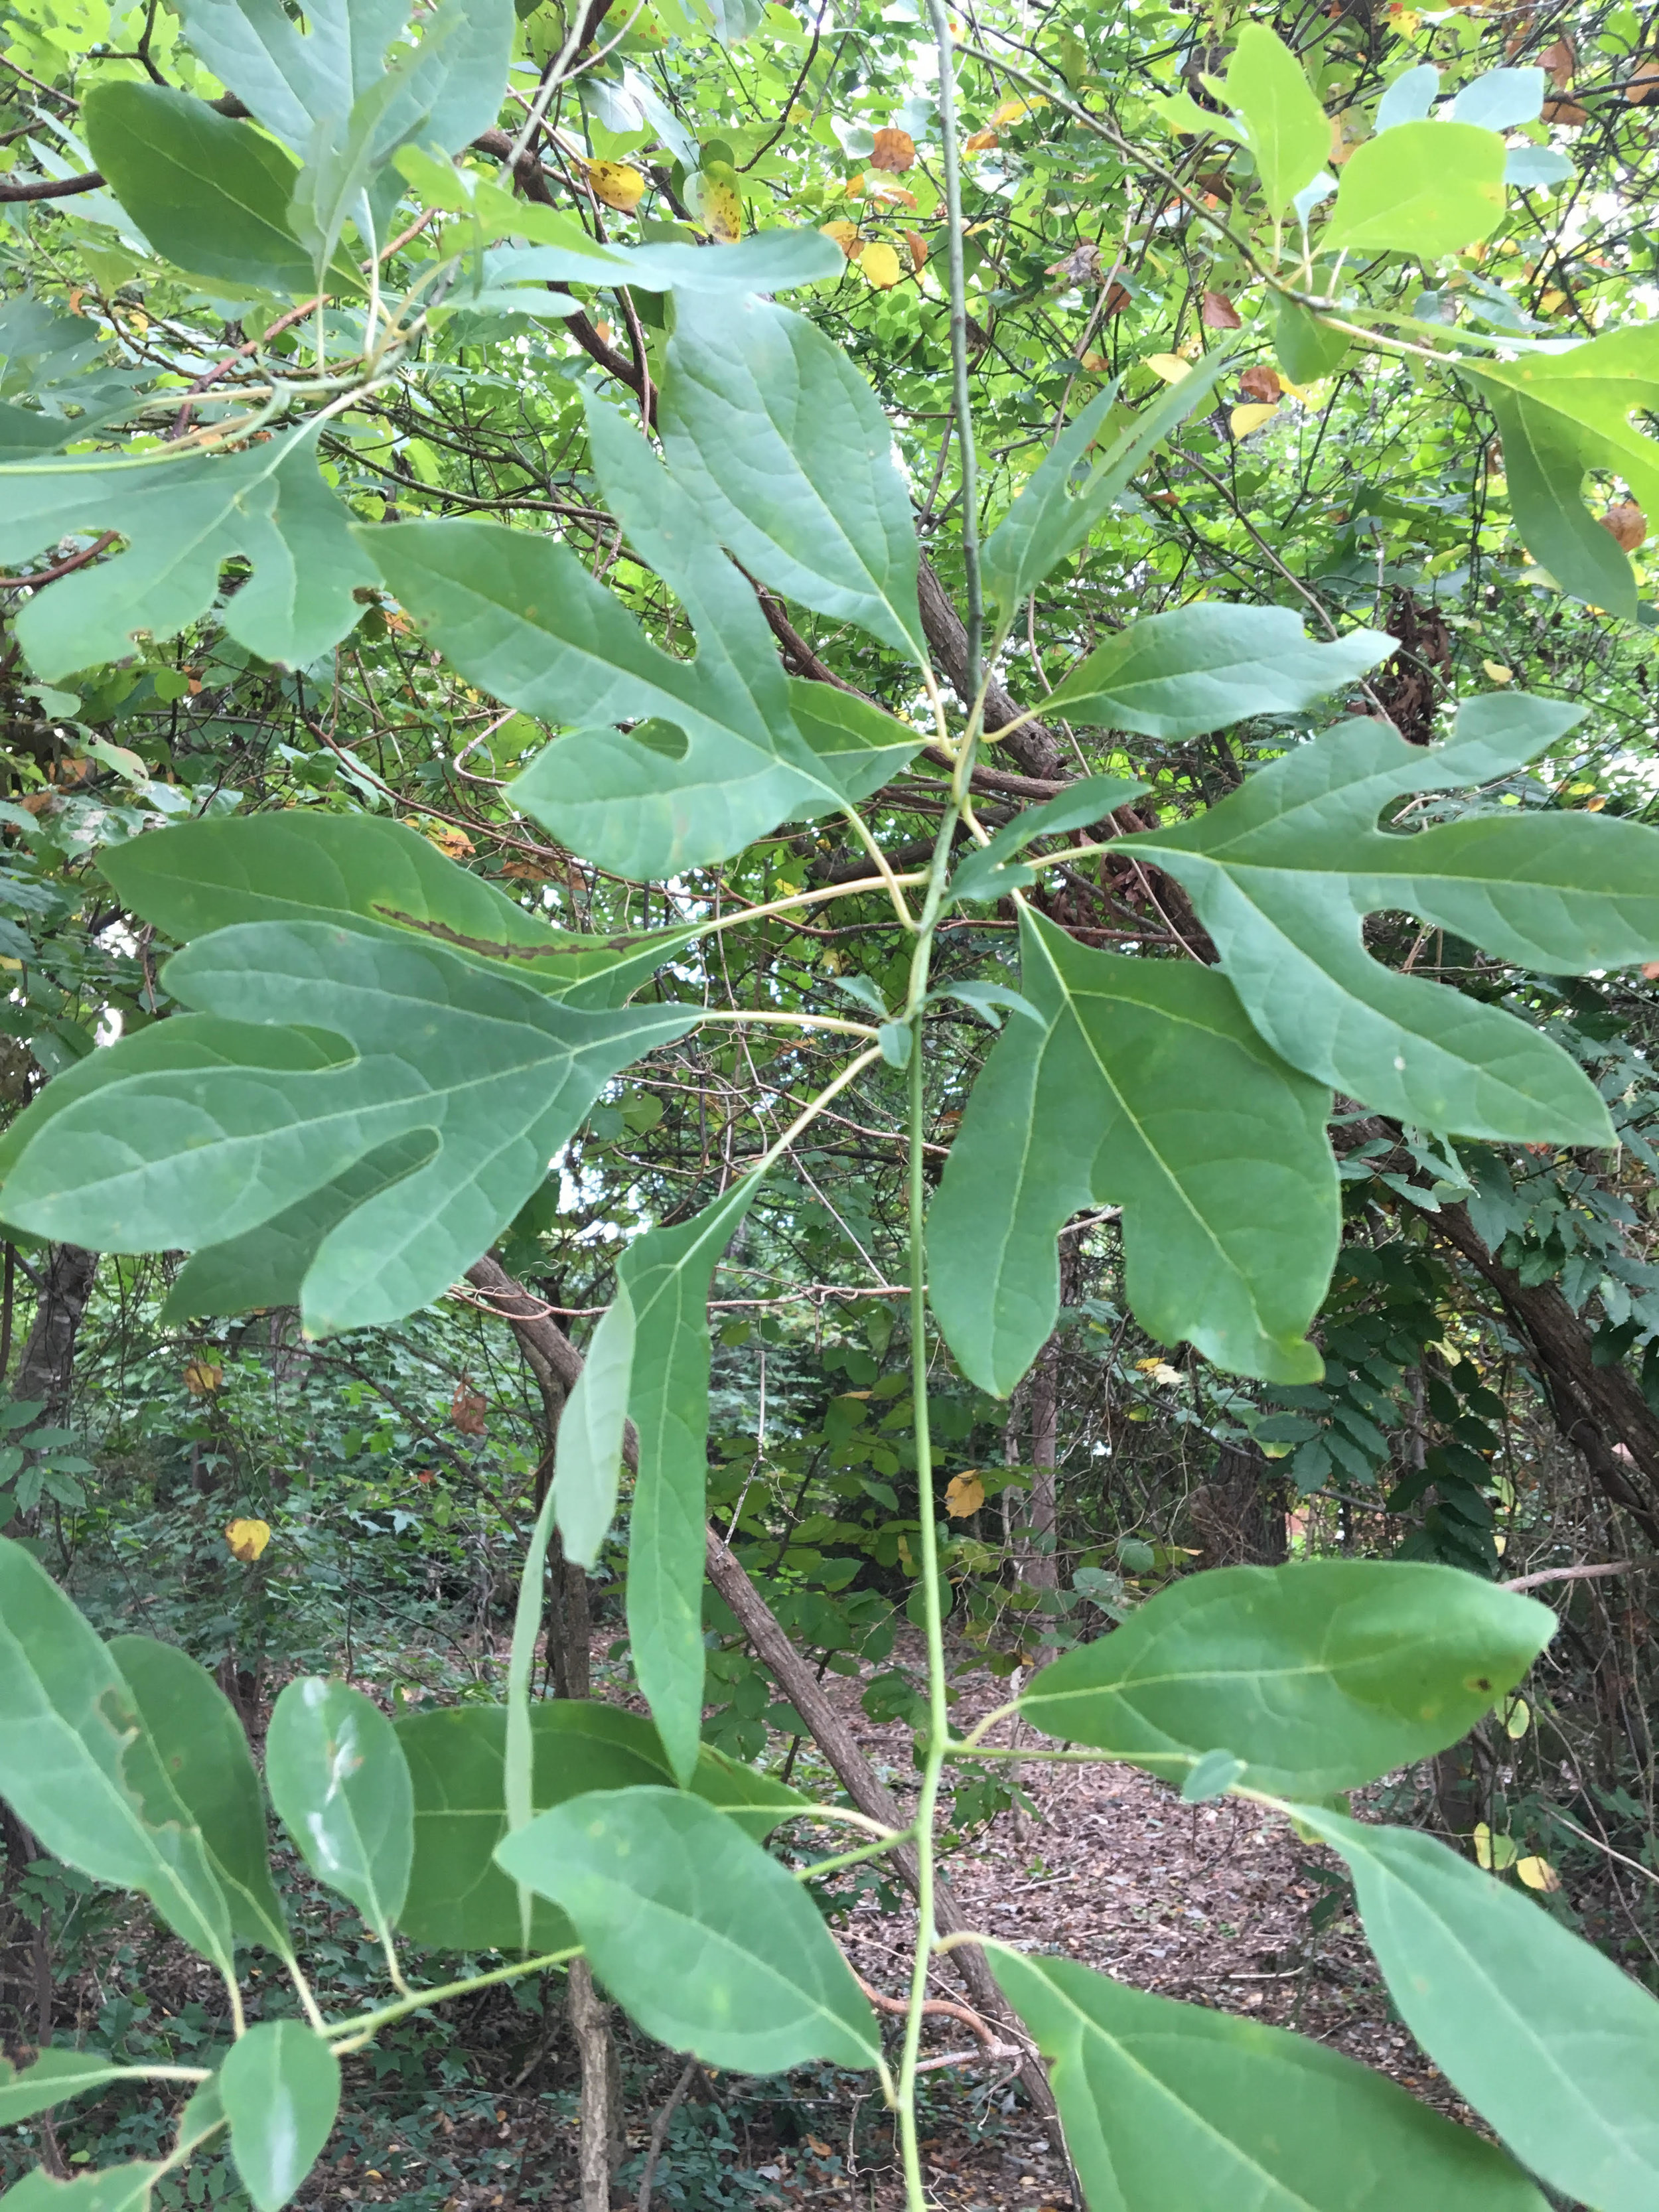 The leaves on the sassafras tree vary in lobed shape.